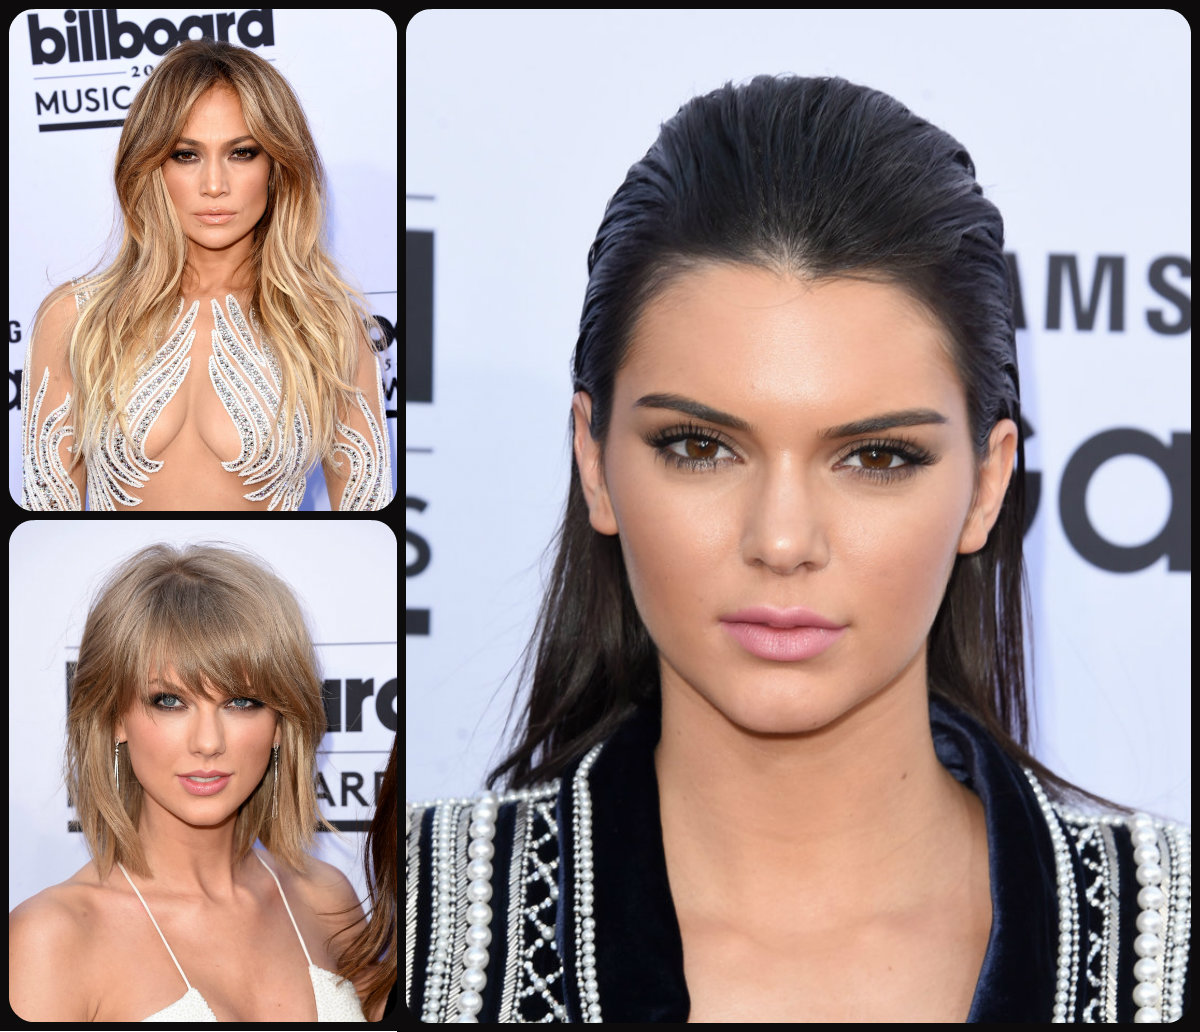 Billboard Music Awards 2015 Hairstyles